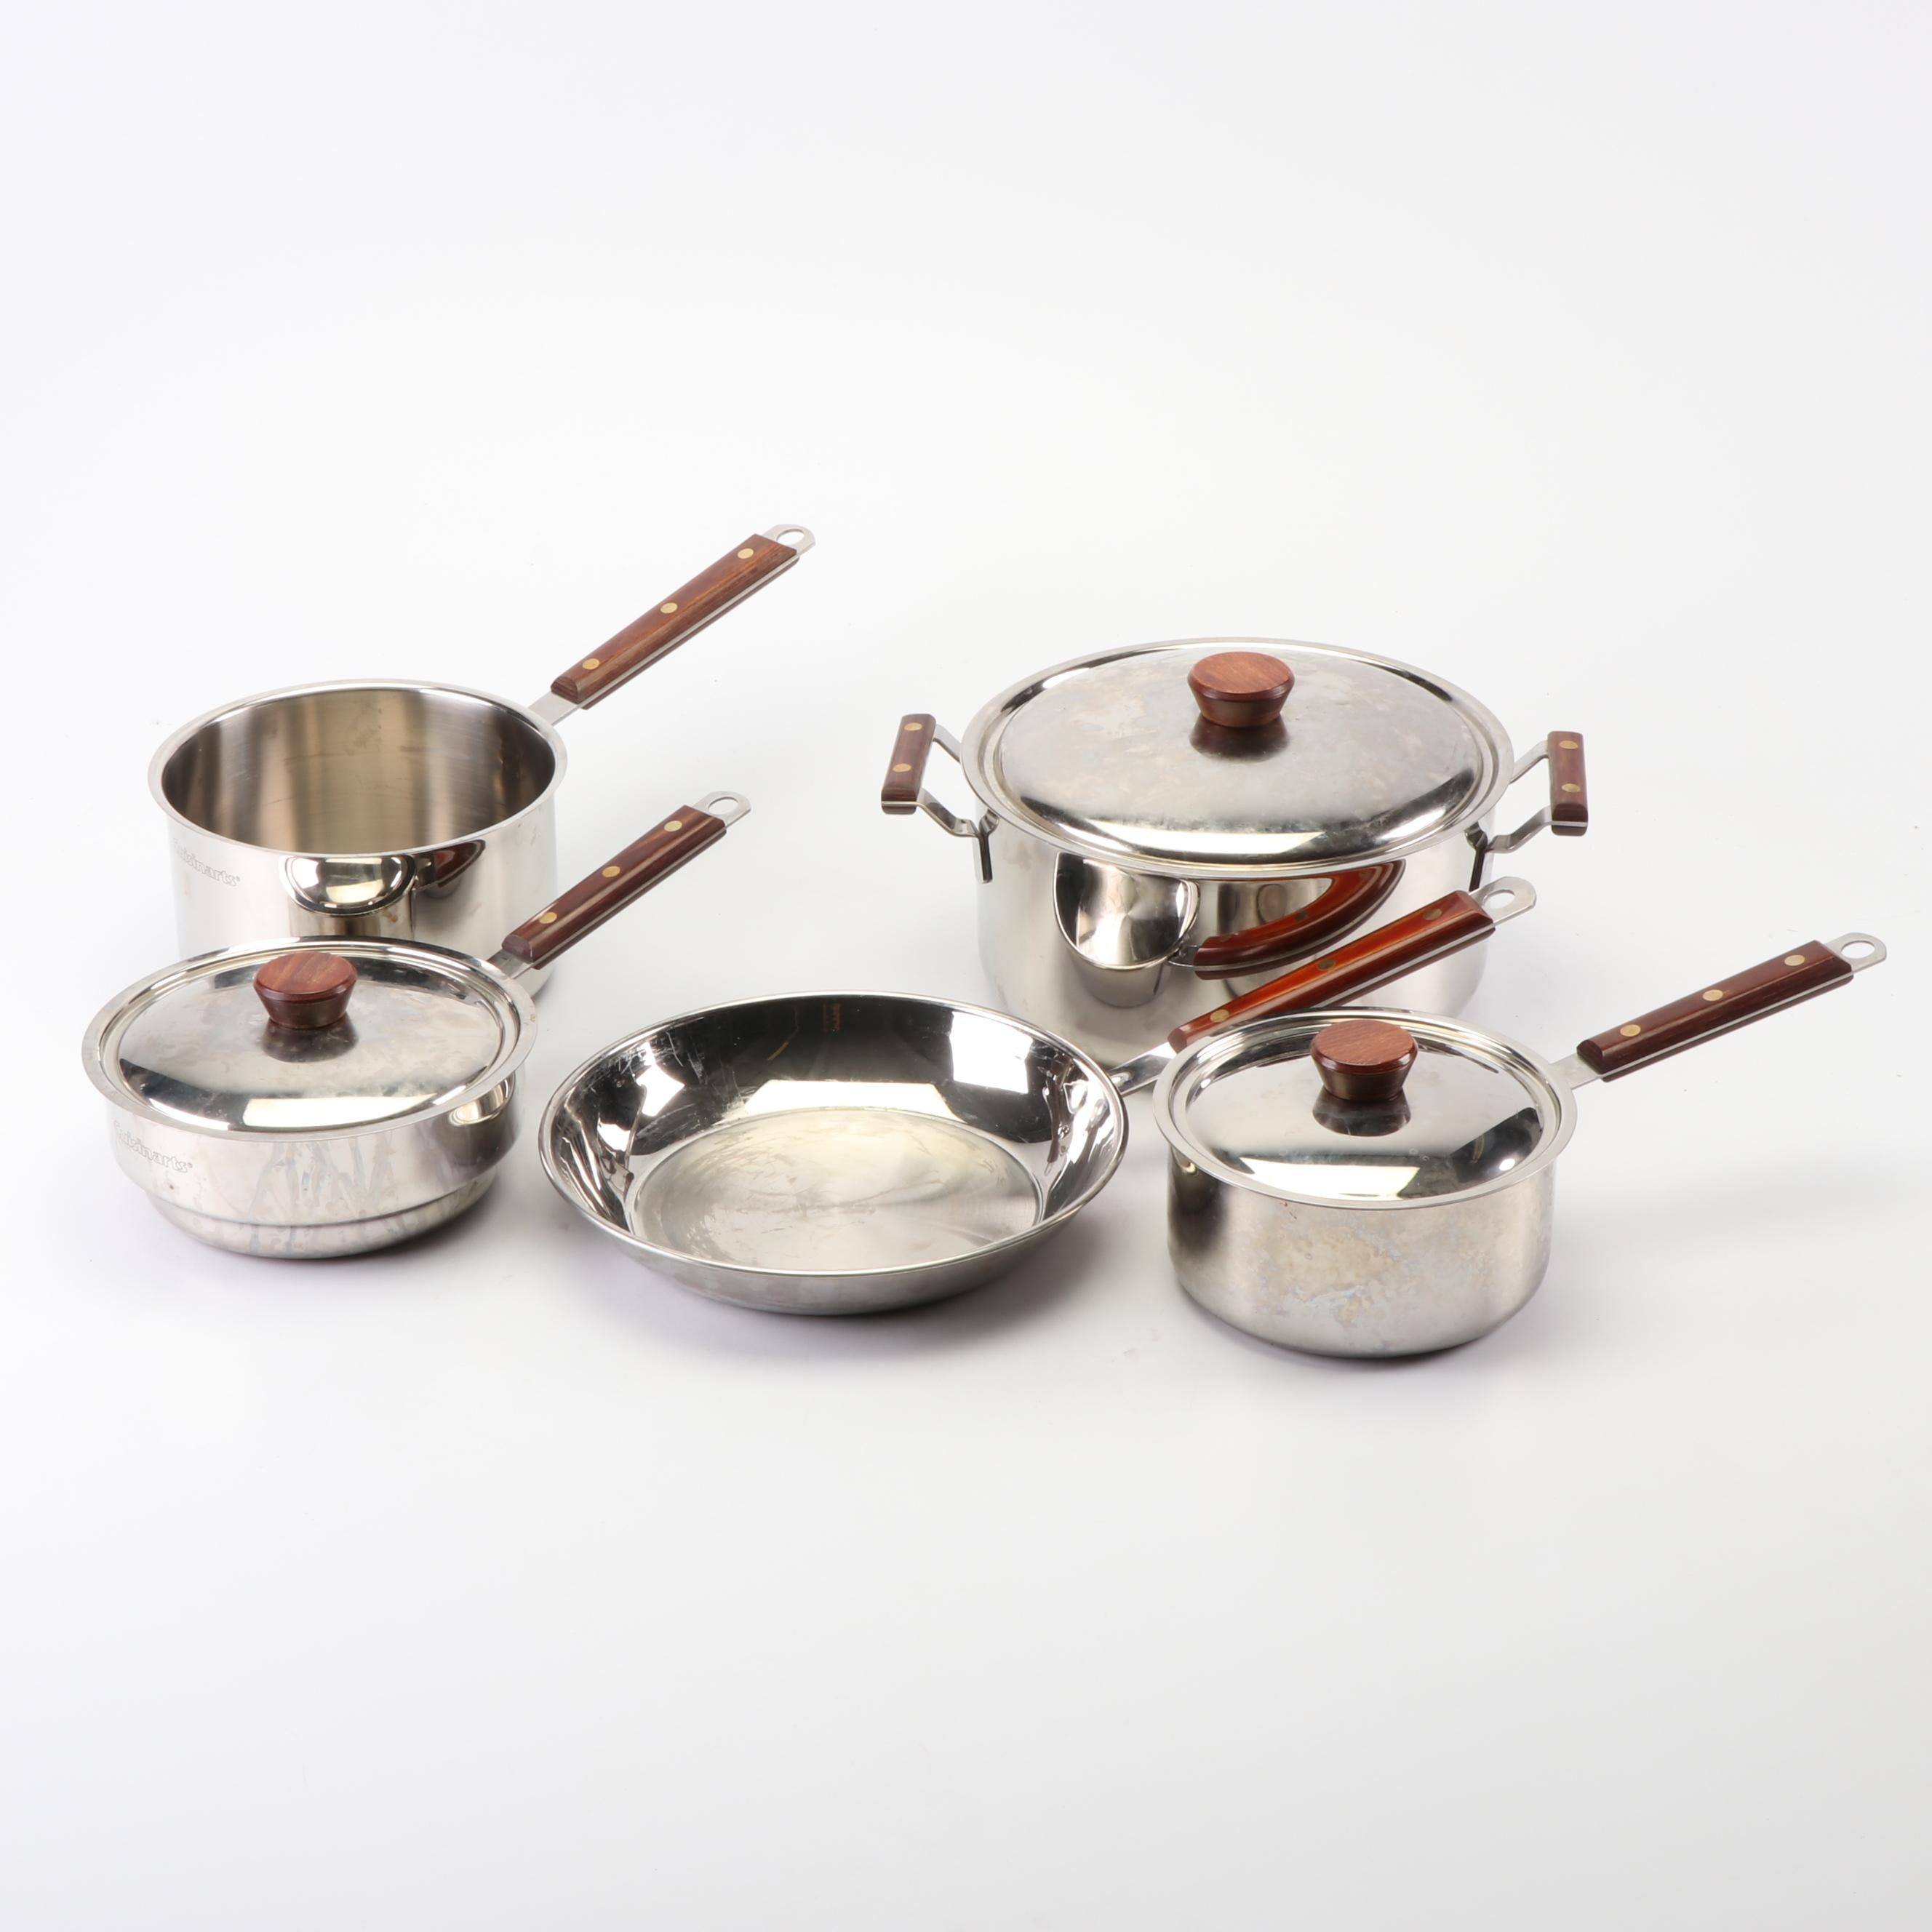 Cuisinart Stainless Steel Pots and Pans with Wooden Handles